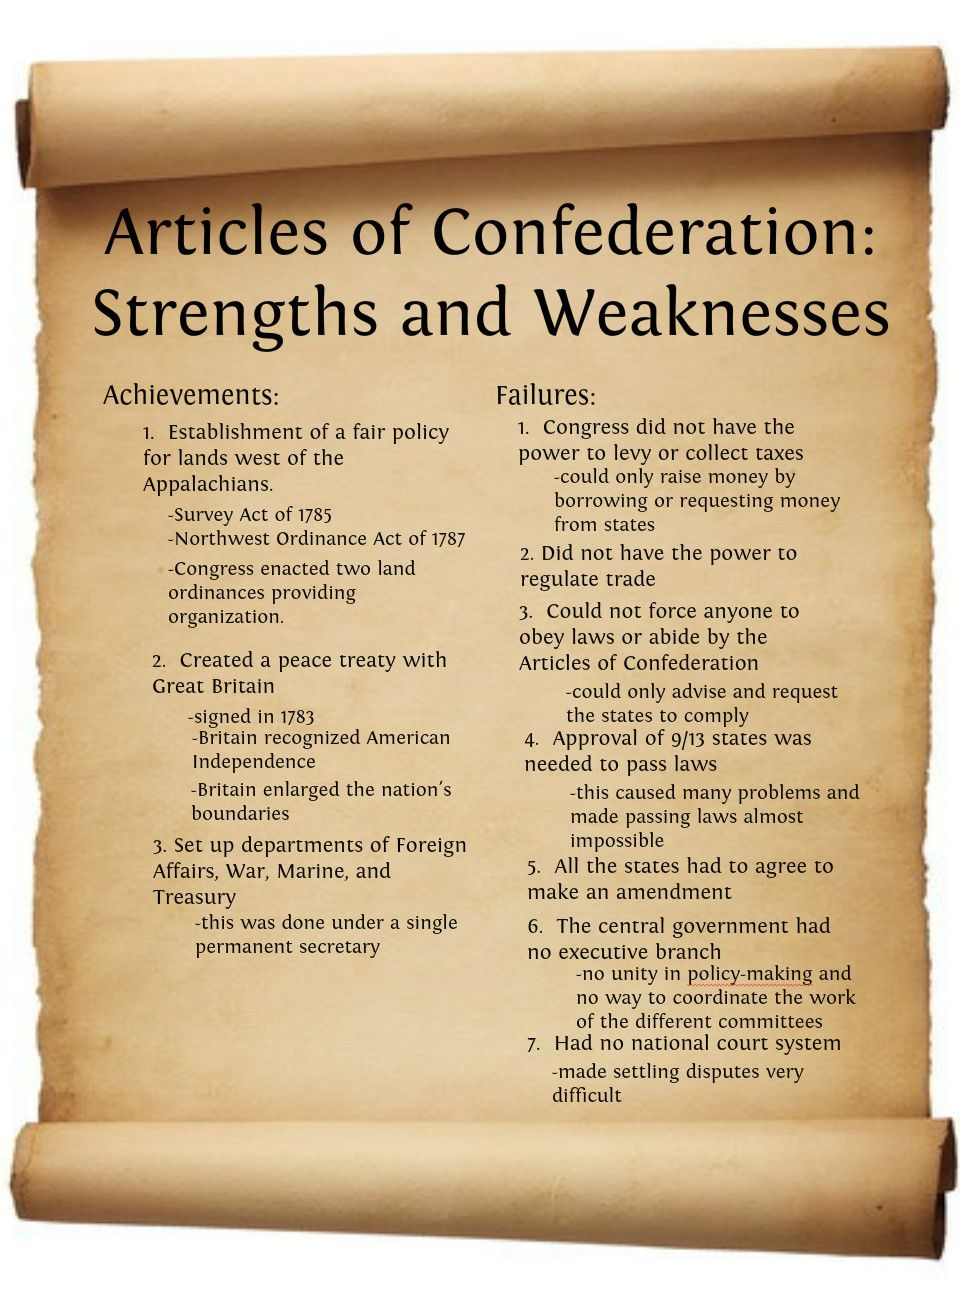 us constitution and articles of confederation essay No state shall enter into any treaty, alliance, or confederation grant letters of   the eighteenth article of amendment to the constitution of the united states is .